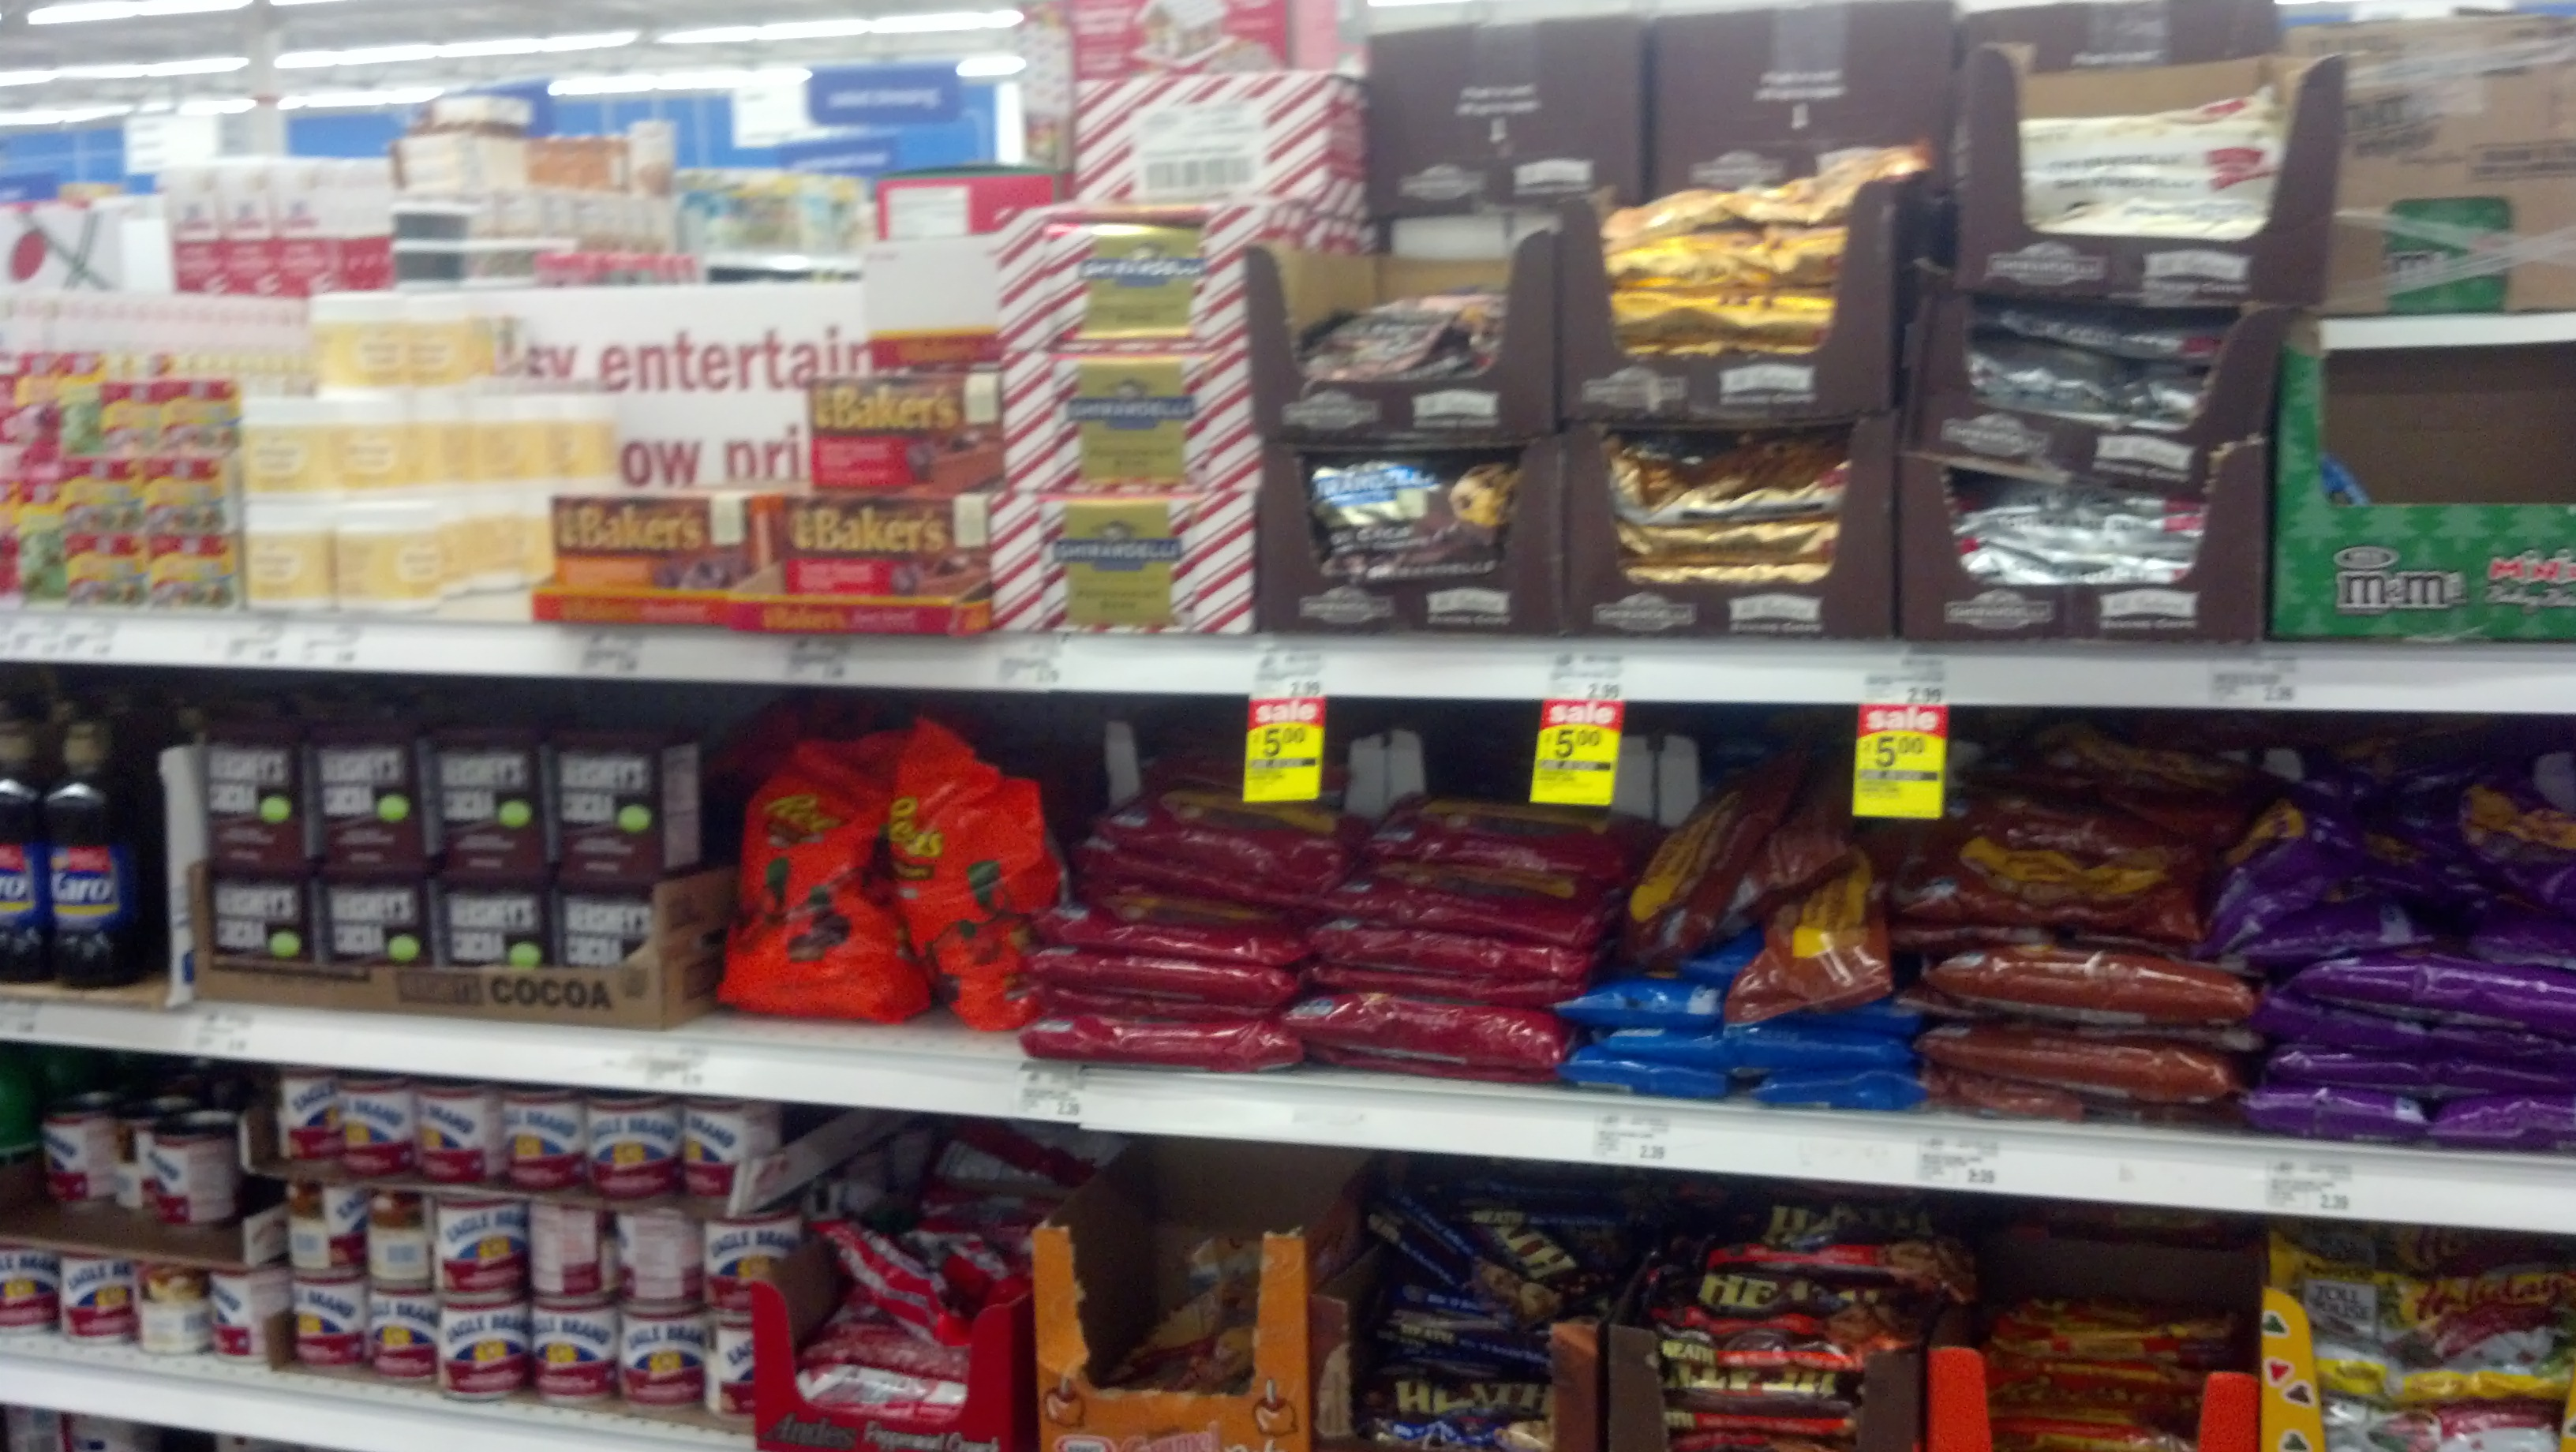 Meijer Two Day Sale – Friday & Saturday (9/26 – 9/27)